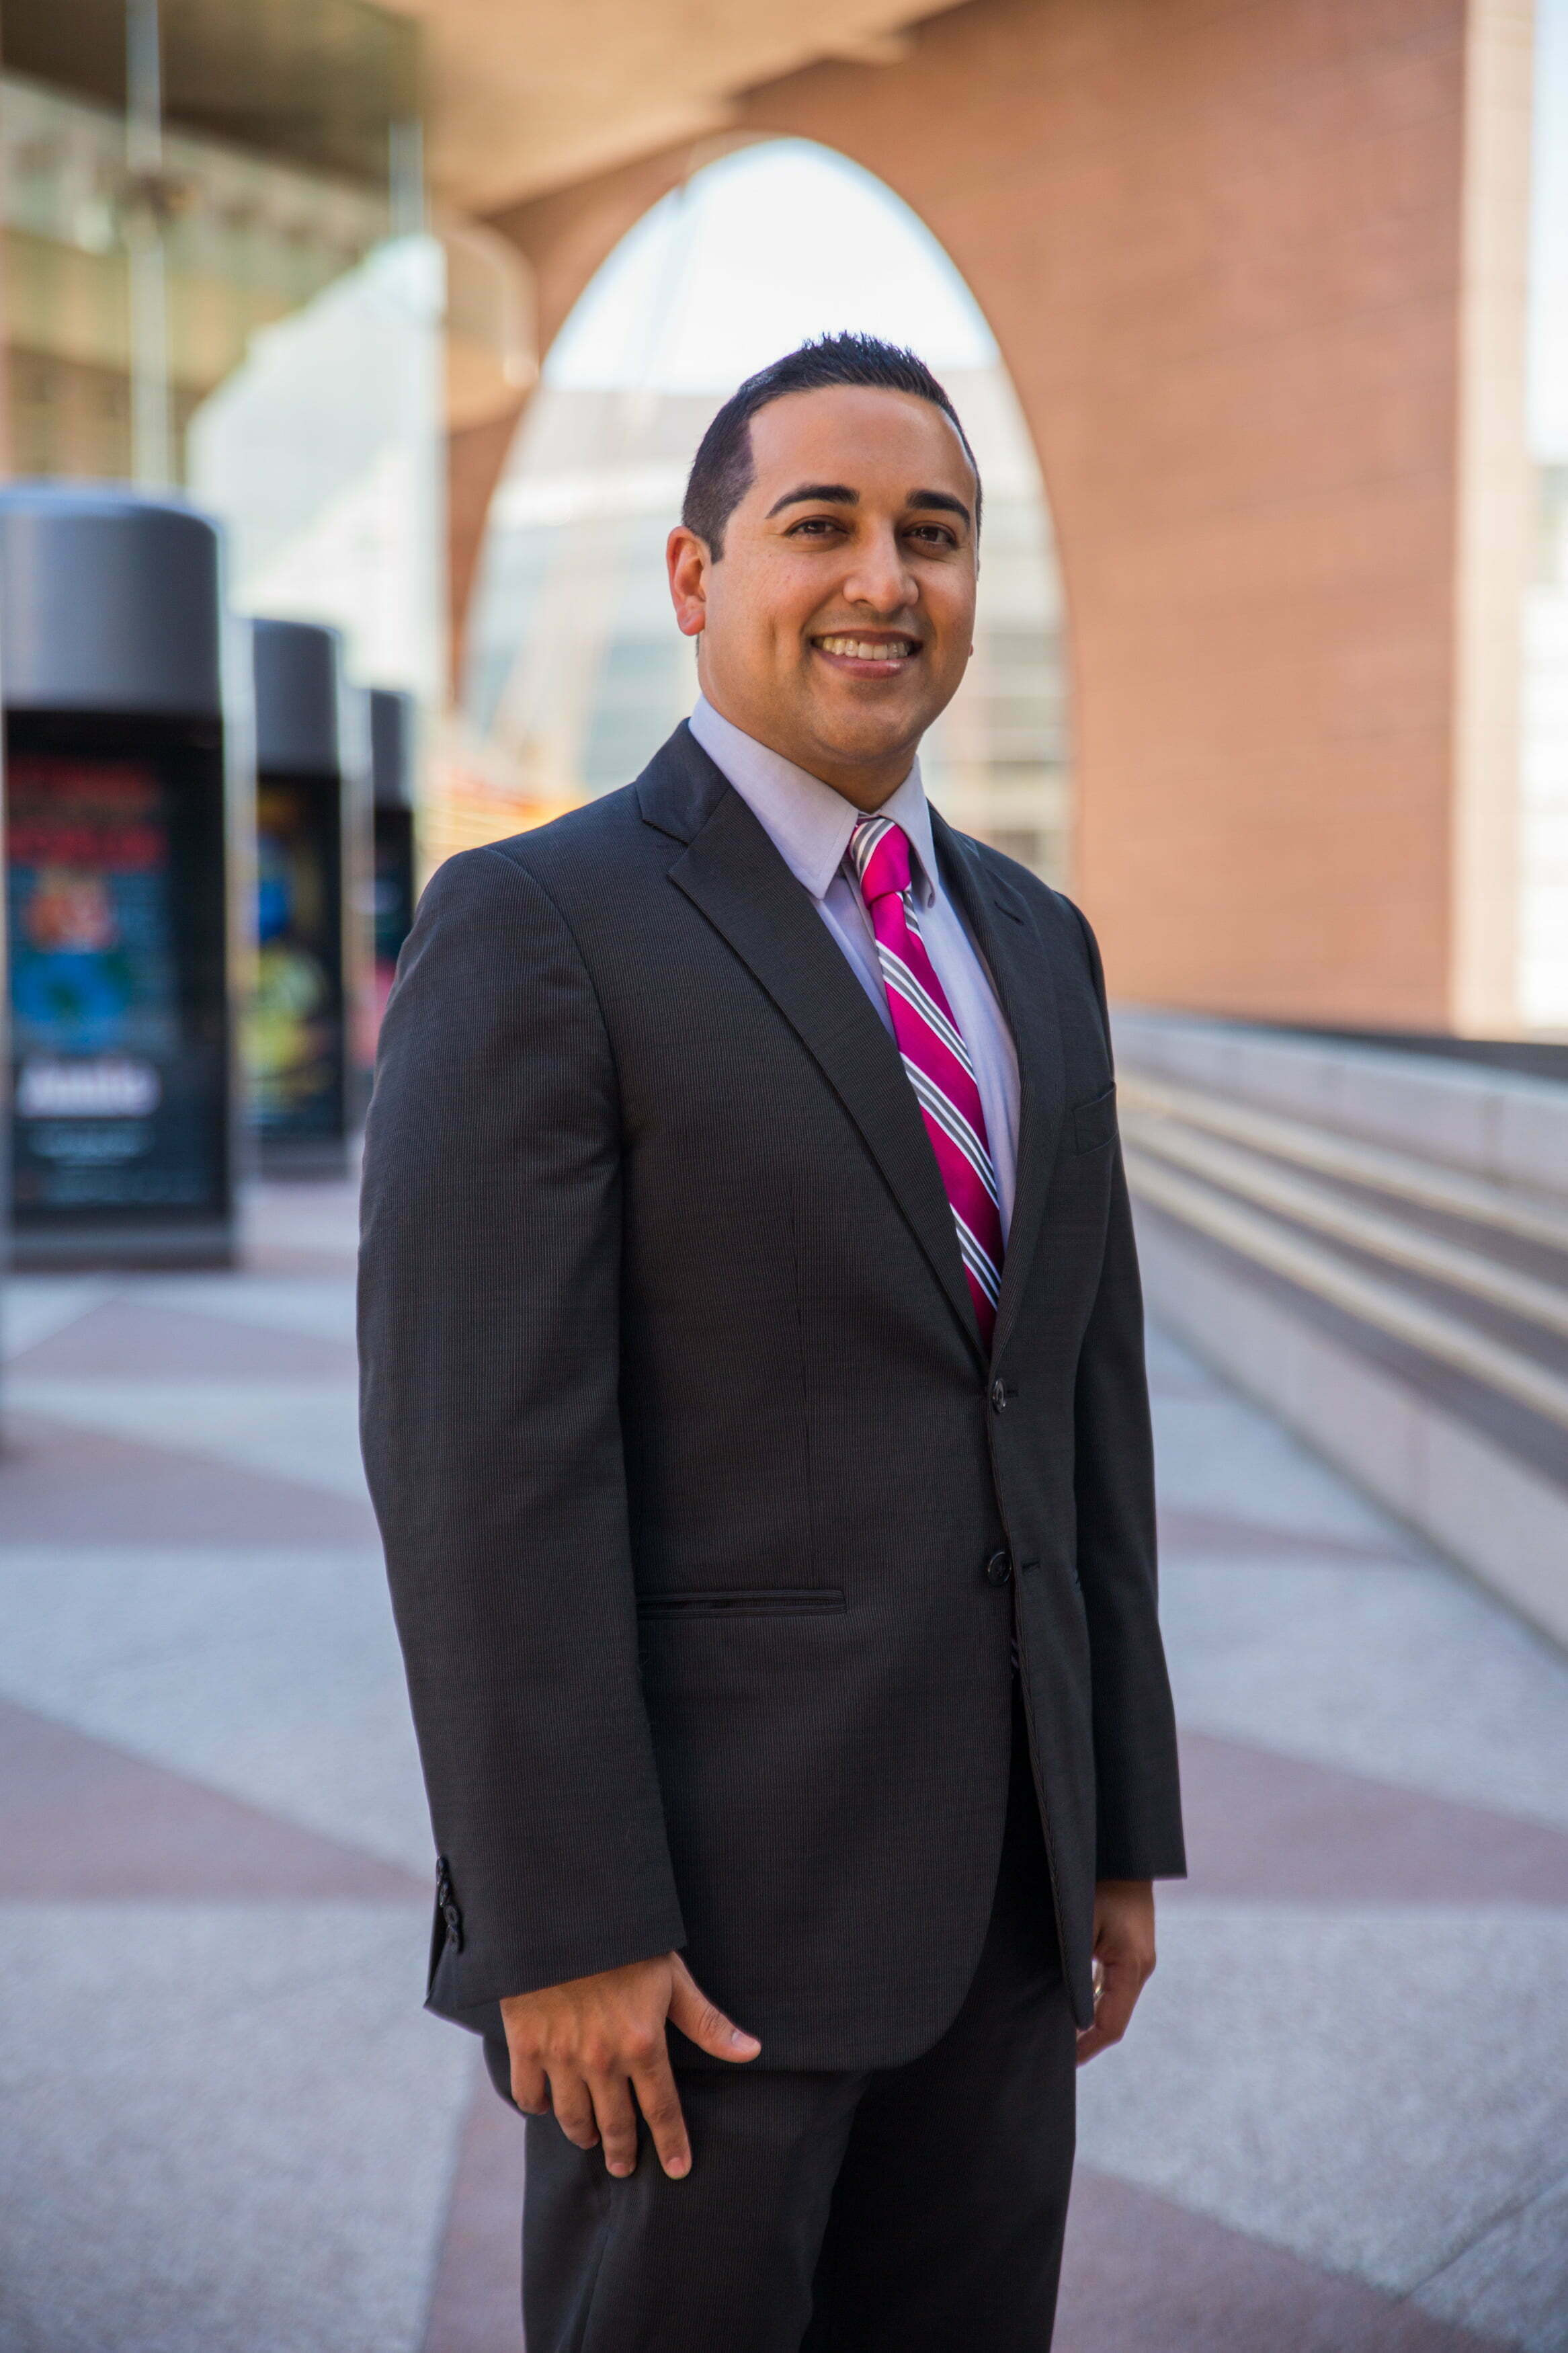 Sandeep J. Shah of Shah Sheth LLP in Costa Mesa, Calif.